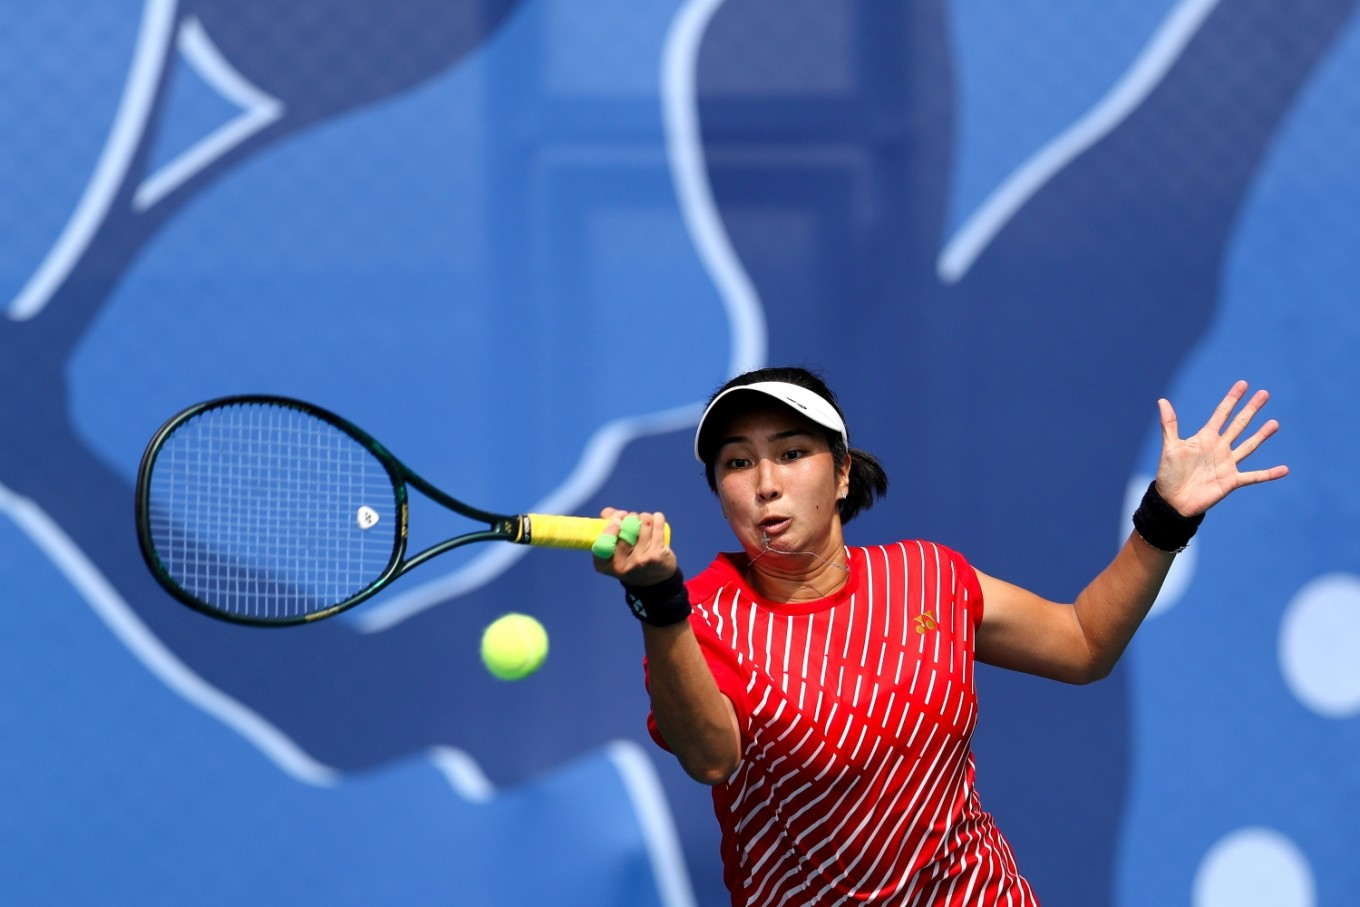 SEA Games: Indonesian tennis ace Aldila holds on to Grand Slam dream - Sports - The Jakarta Post